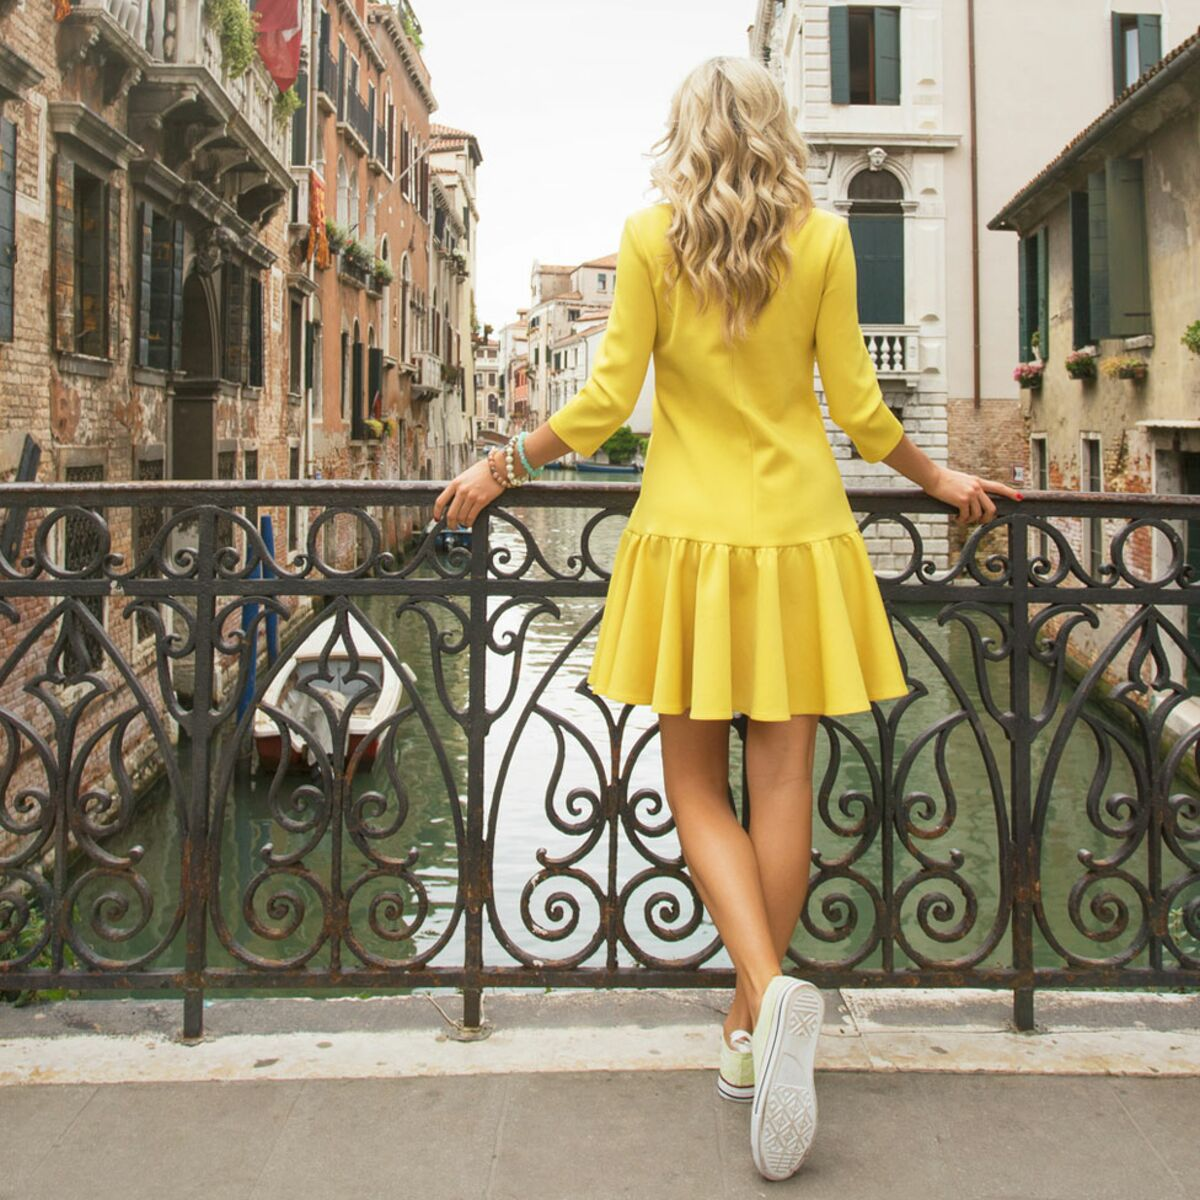 Robe Jaune On Ose Femme Actuelle Le Mag